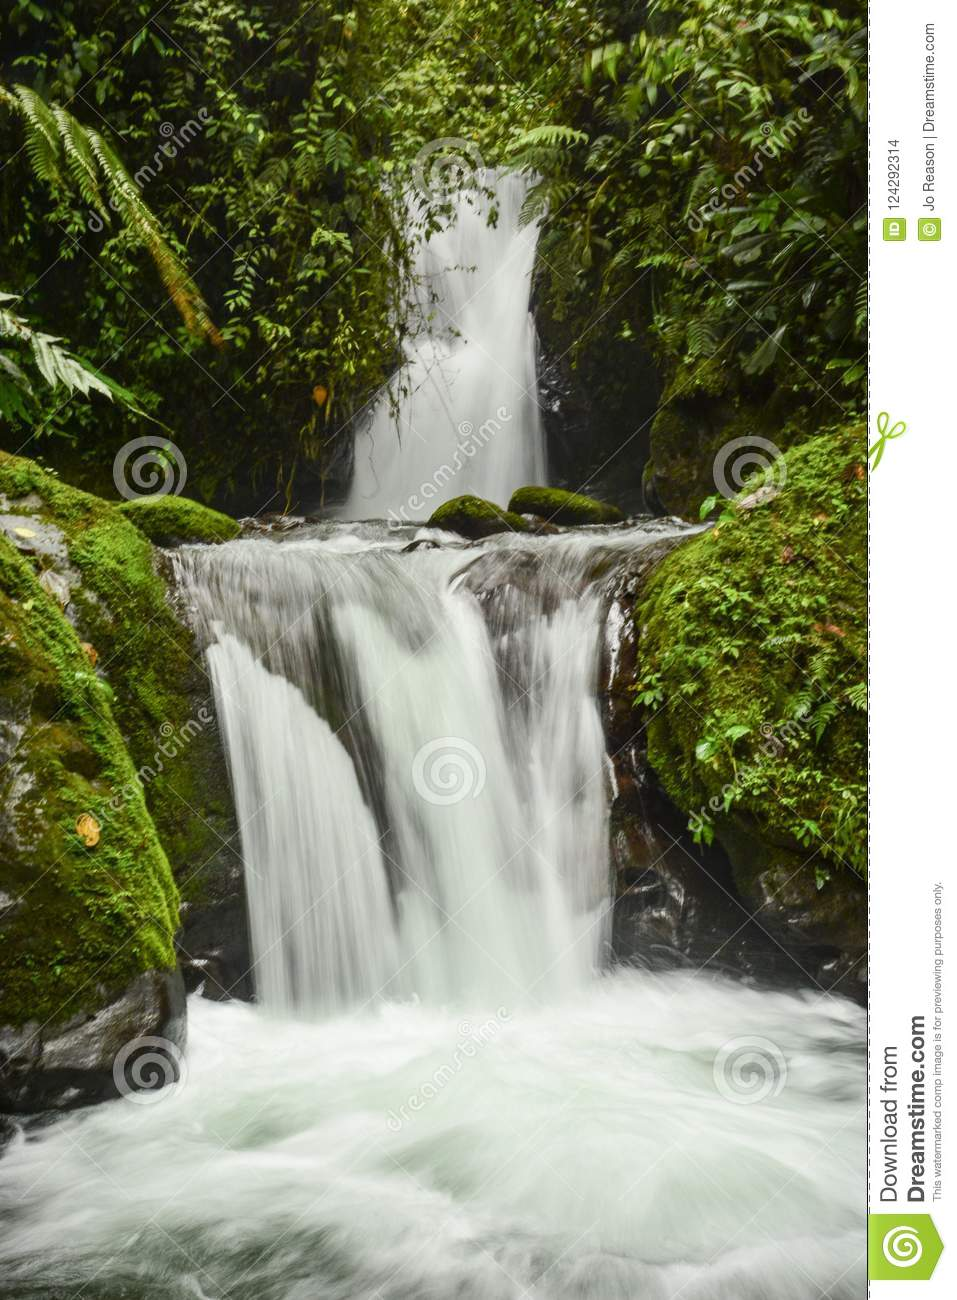 Double Waterfall, slow motion